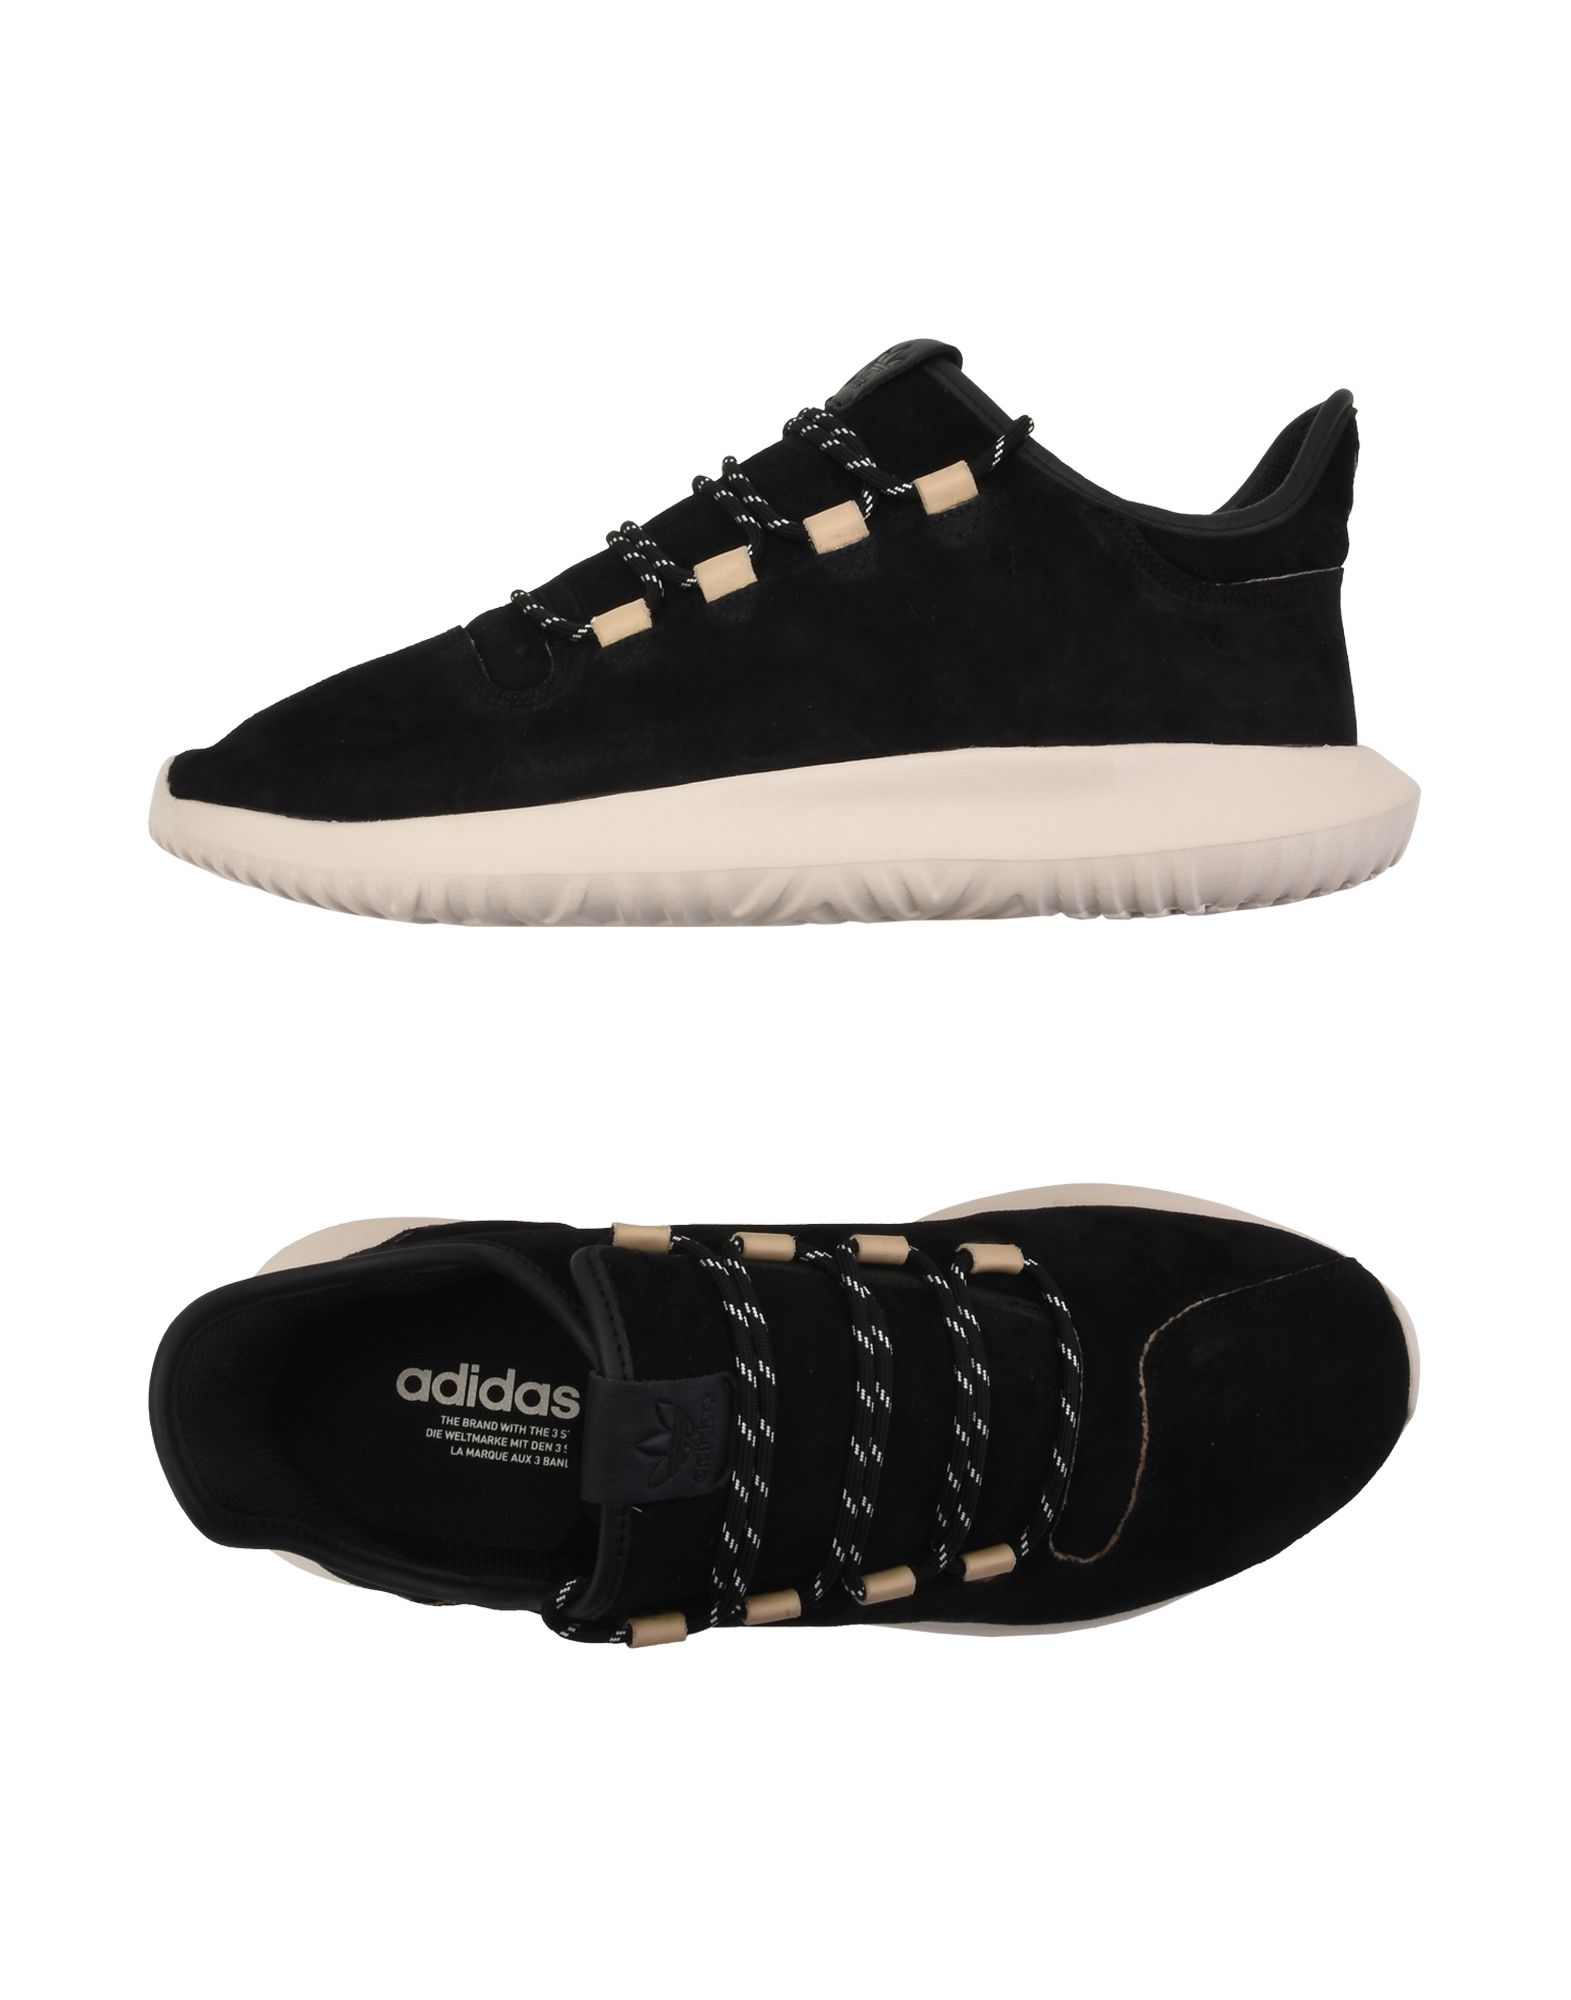 Originals Adidas Originals  Tubular Shadow - Uomo - 11334375DW 5e217b